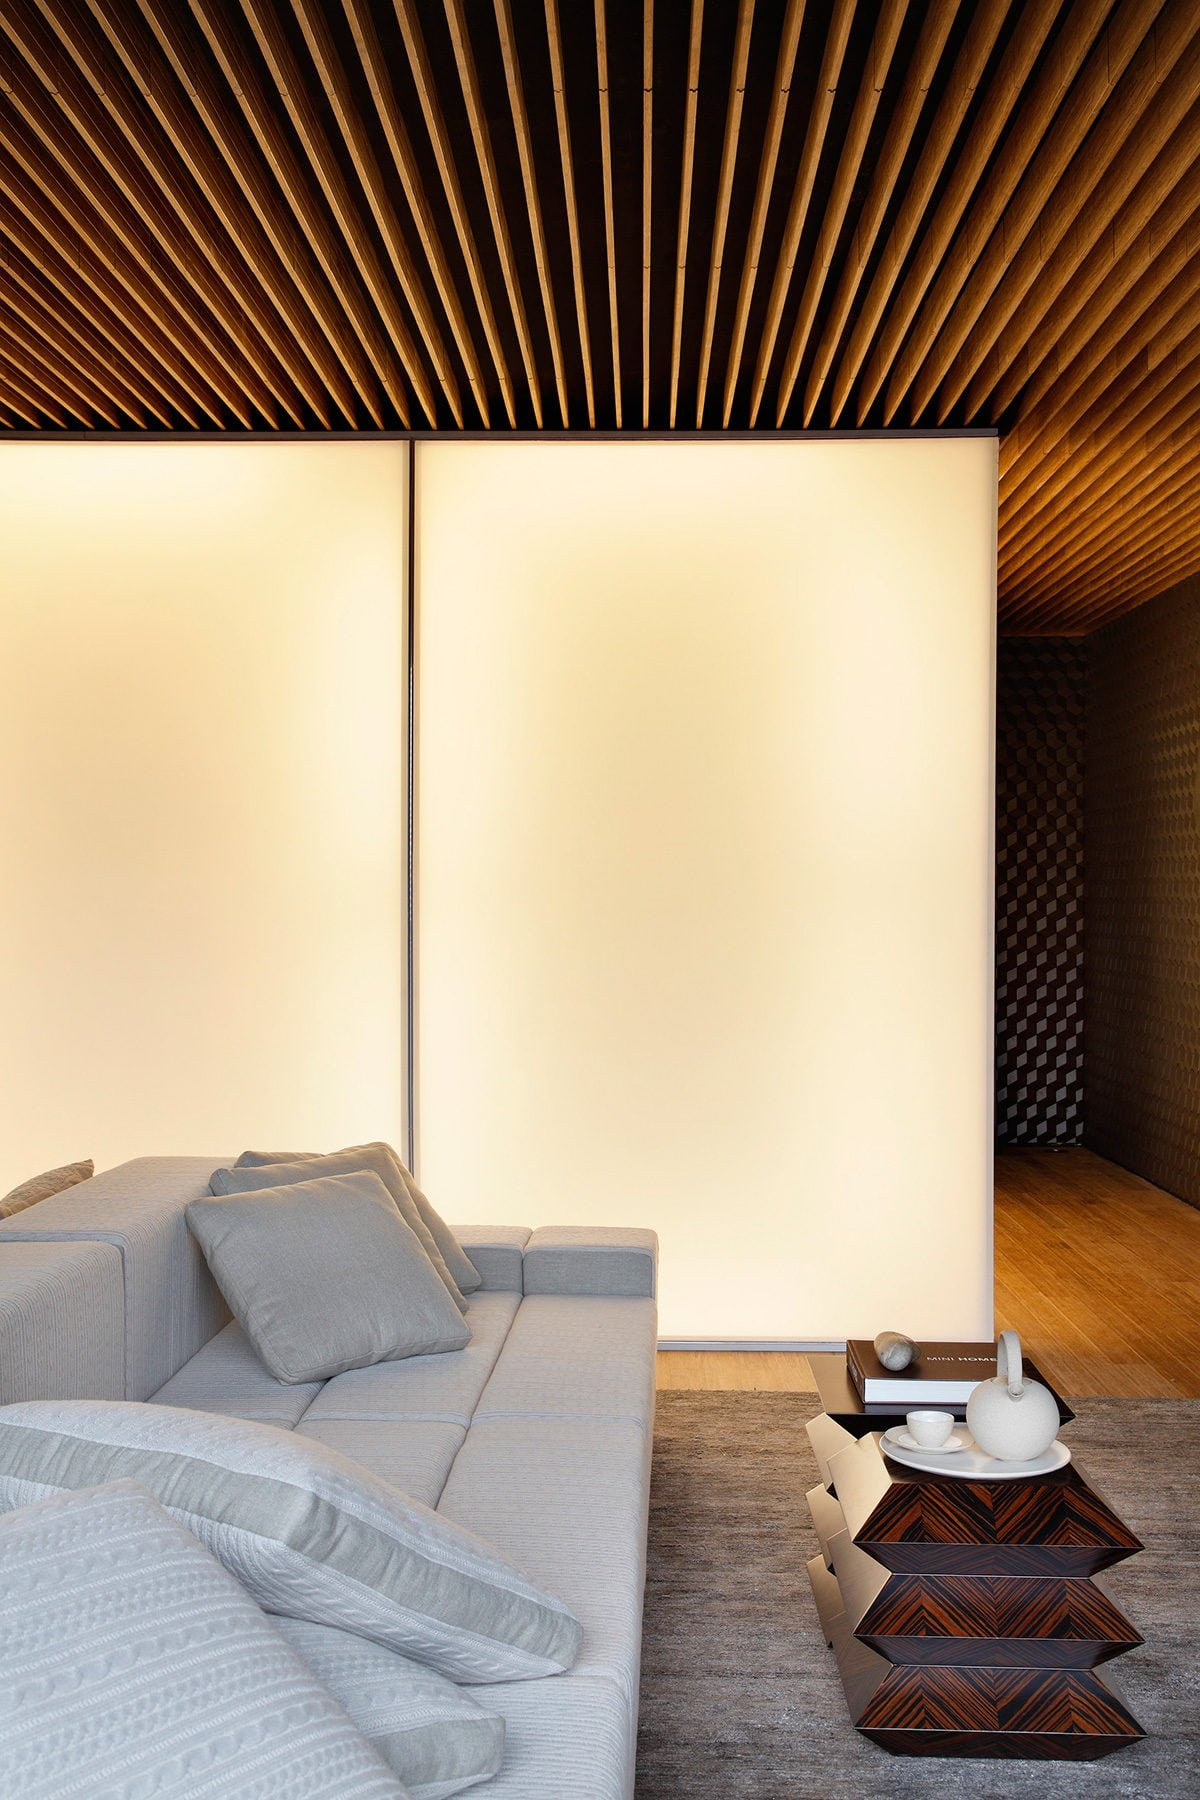 6Hotel-Black-by-Studio-Guilherme-Torres-at-MostraBlack-2013-Yellowtrace-11